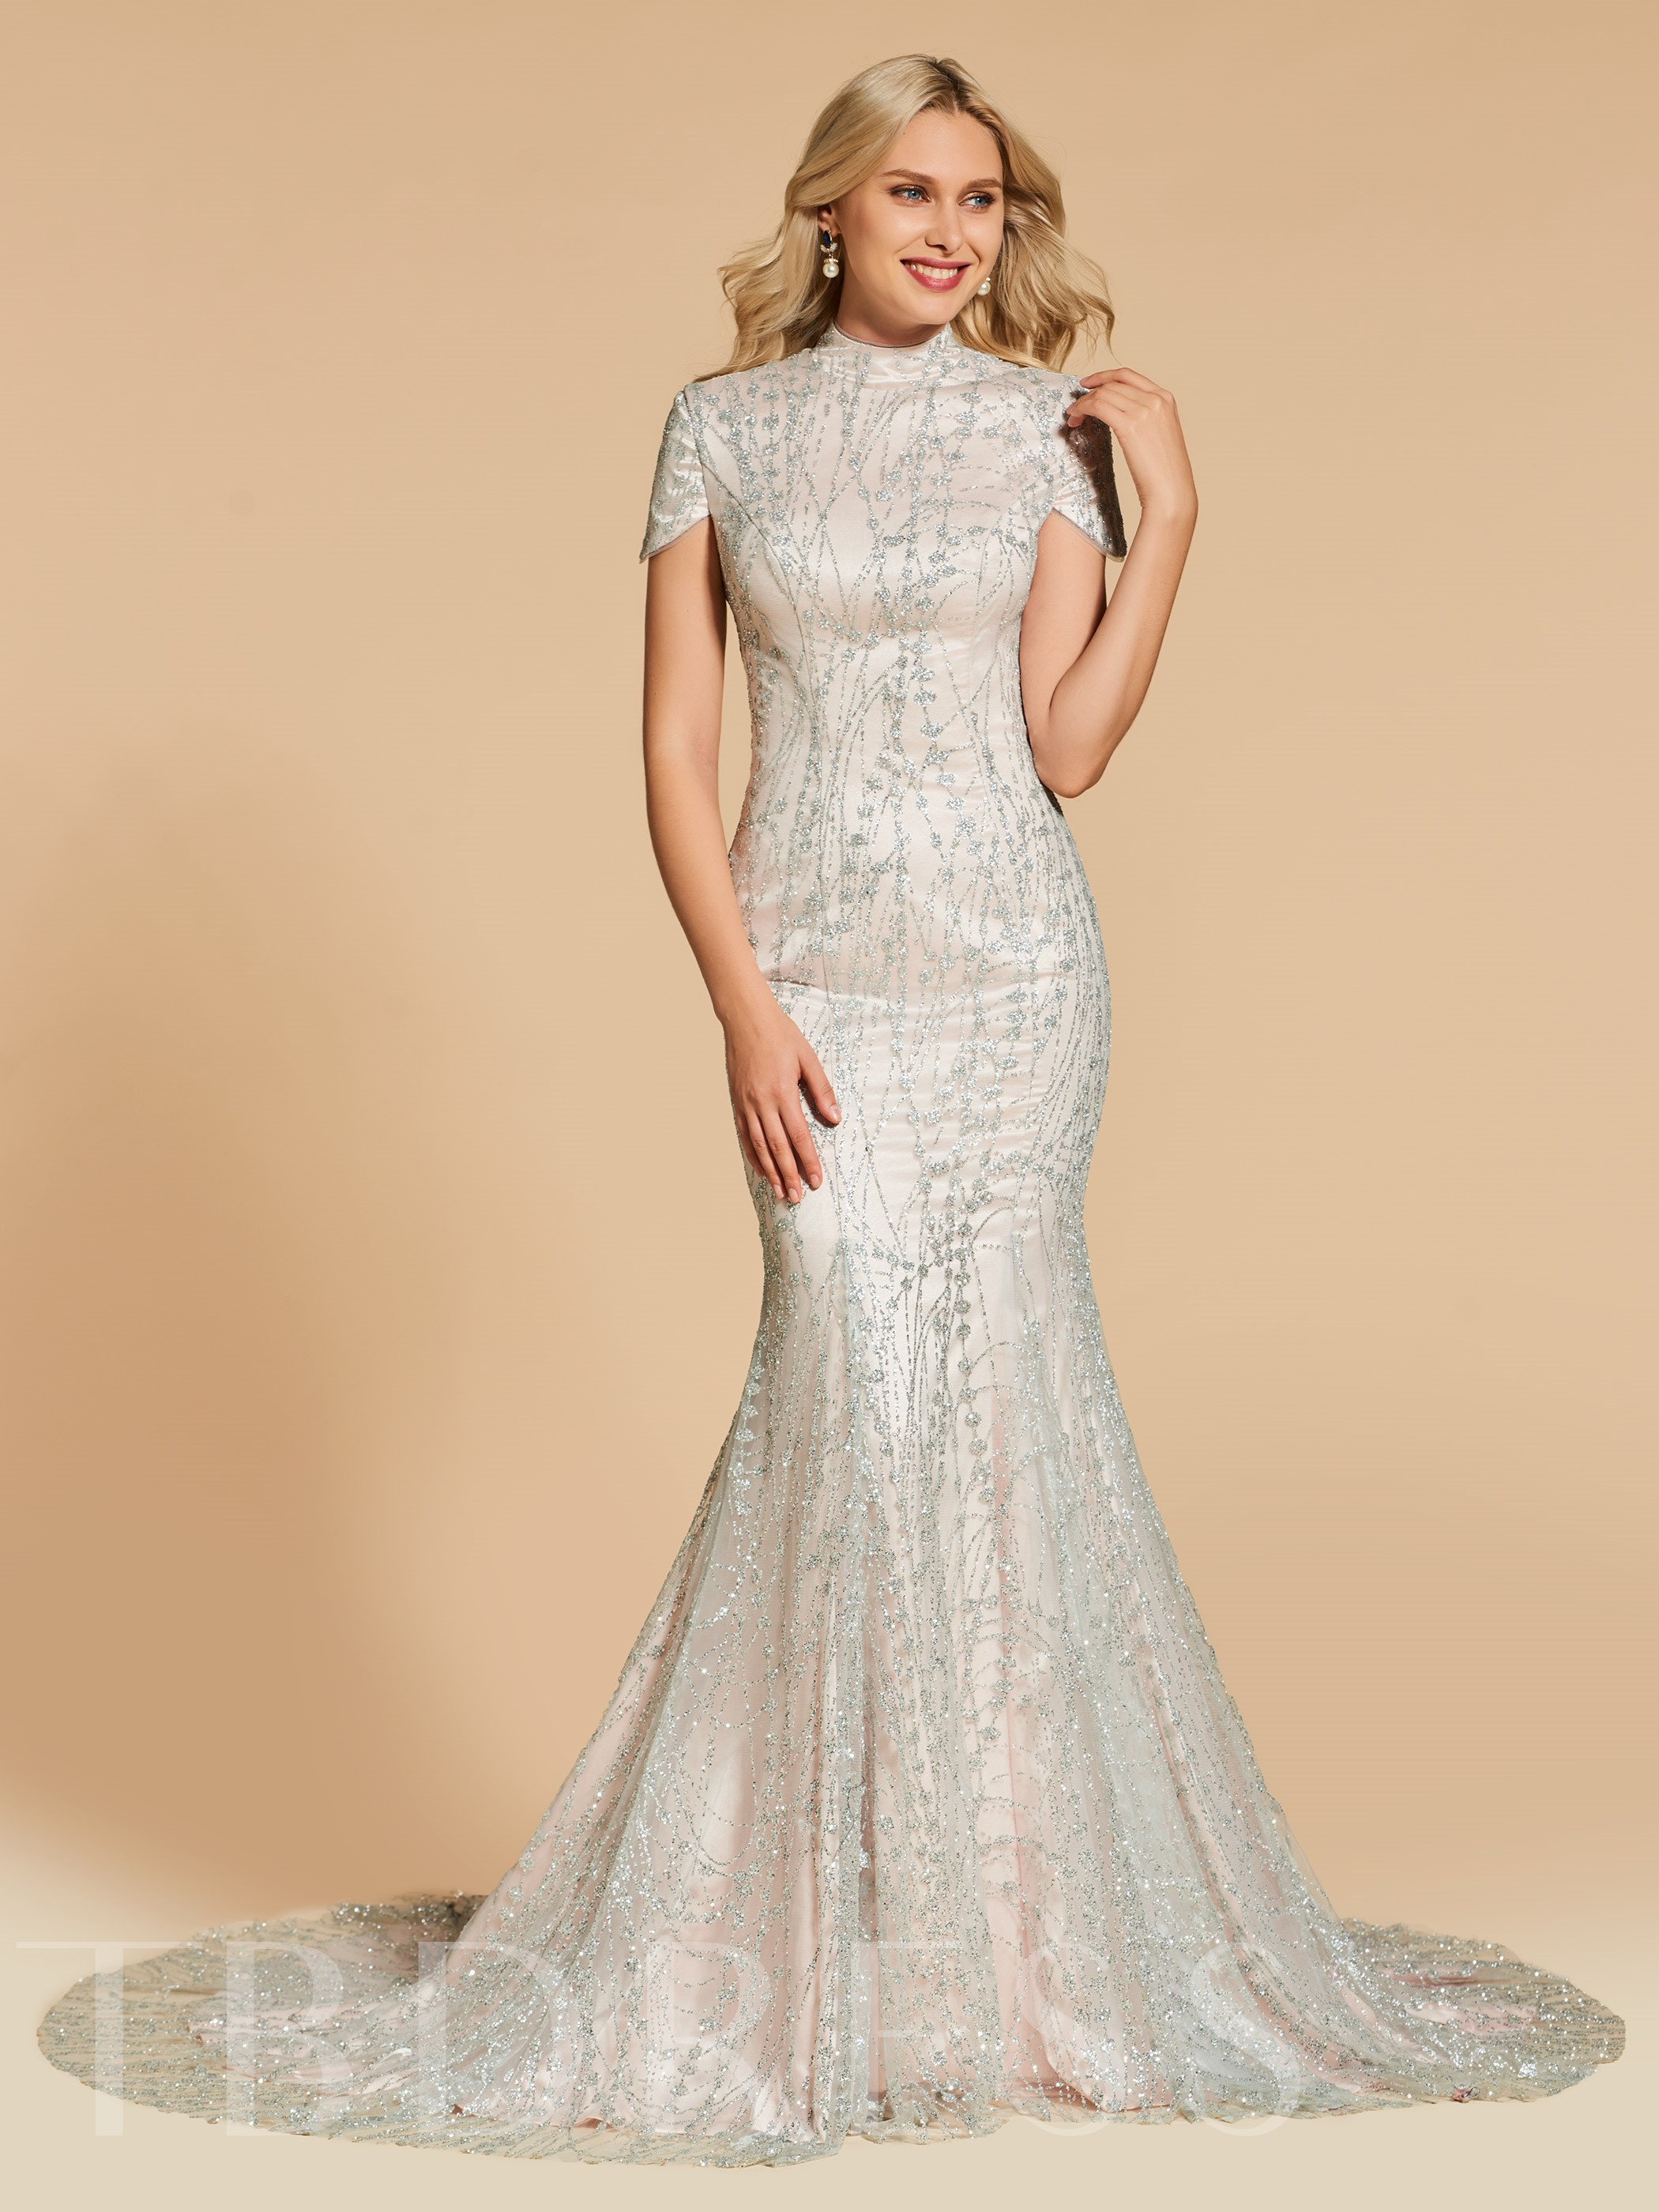 Buy High Neck Mermaid Short Sleeves Lace Evening Dress, Spring,Summer,Fall,Winter, 13117587 for $175.29 in TBDress store